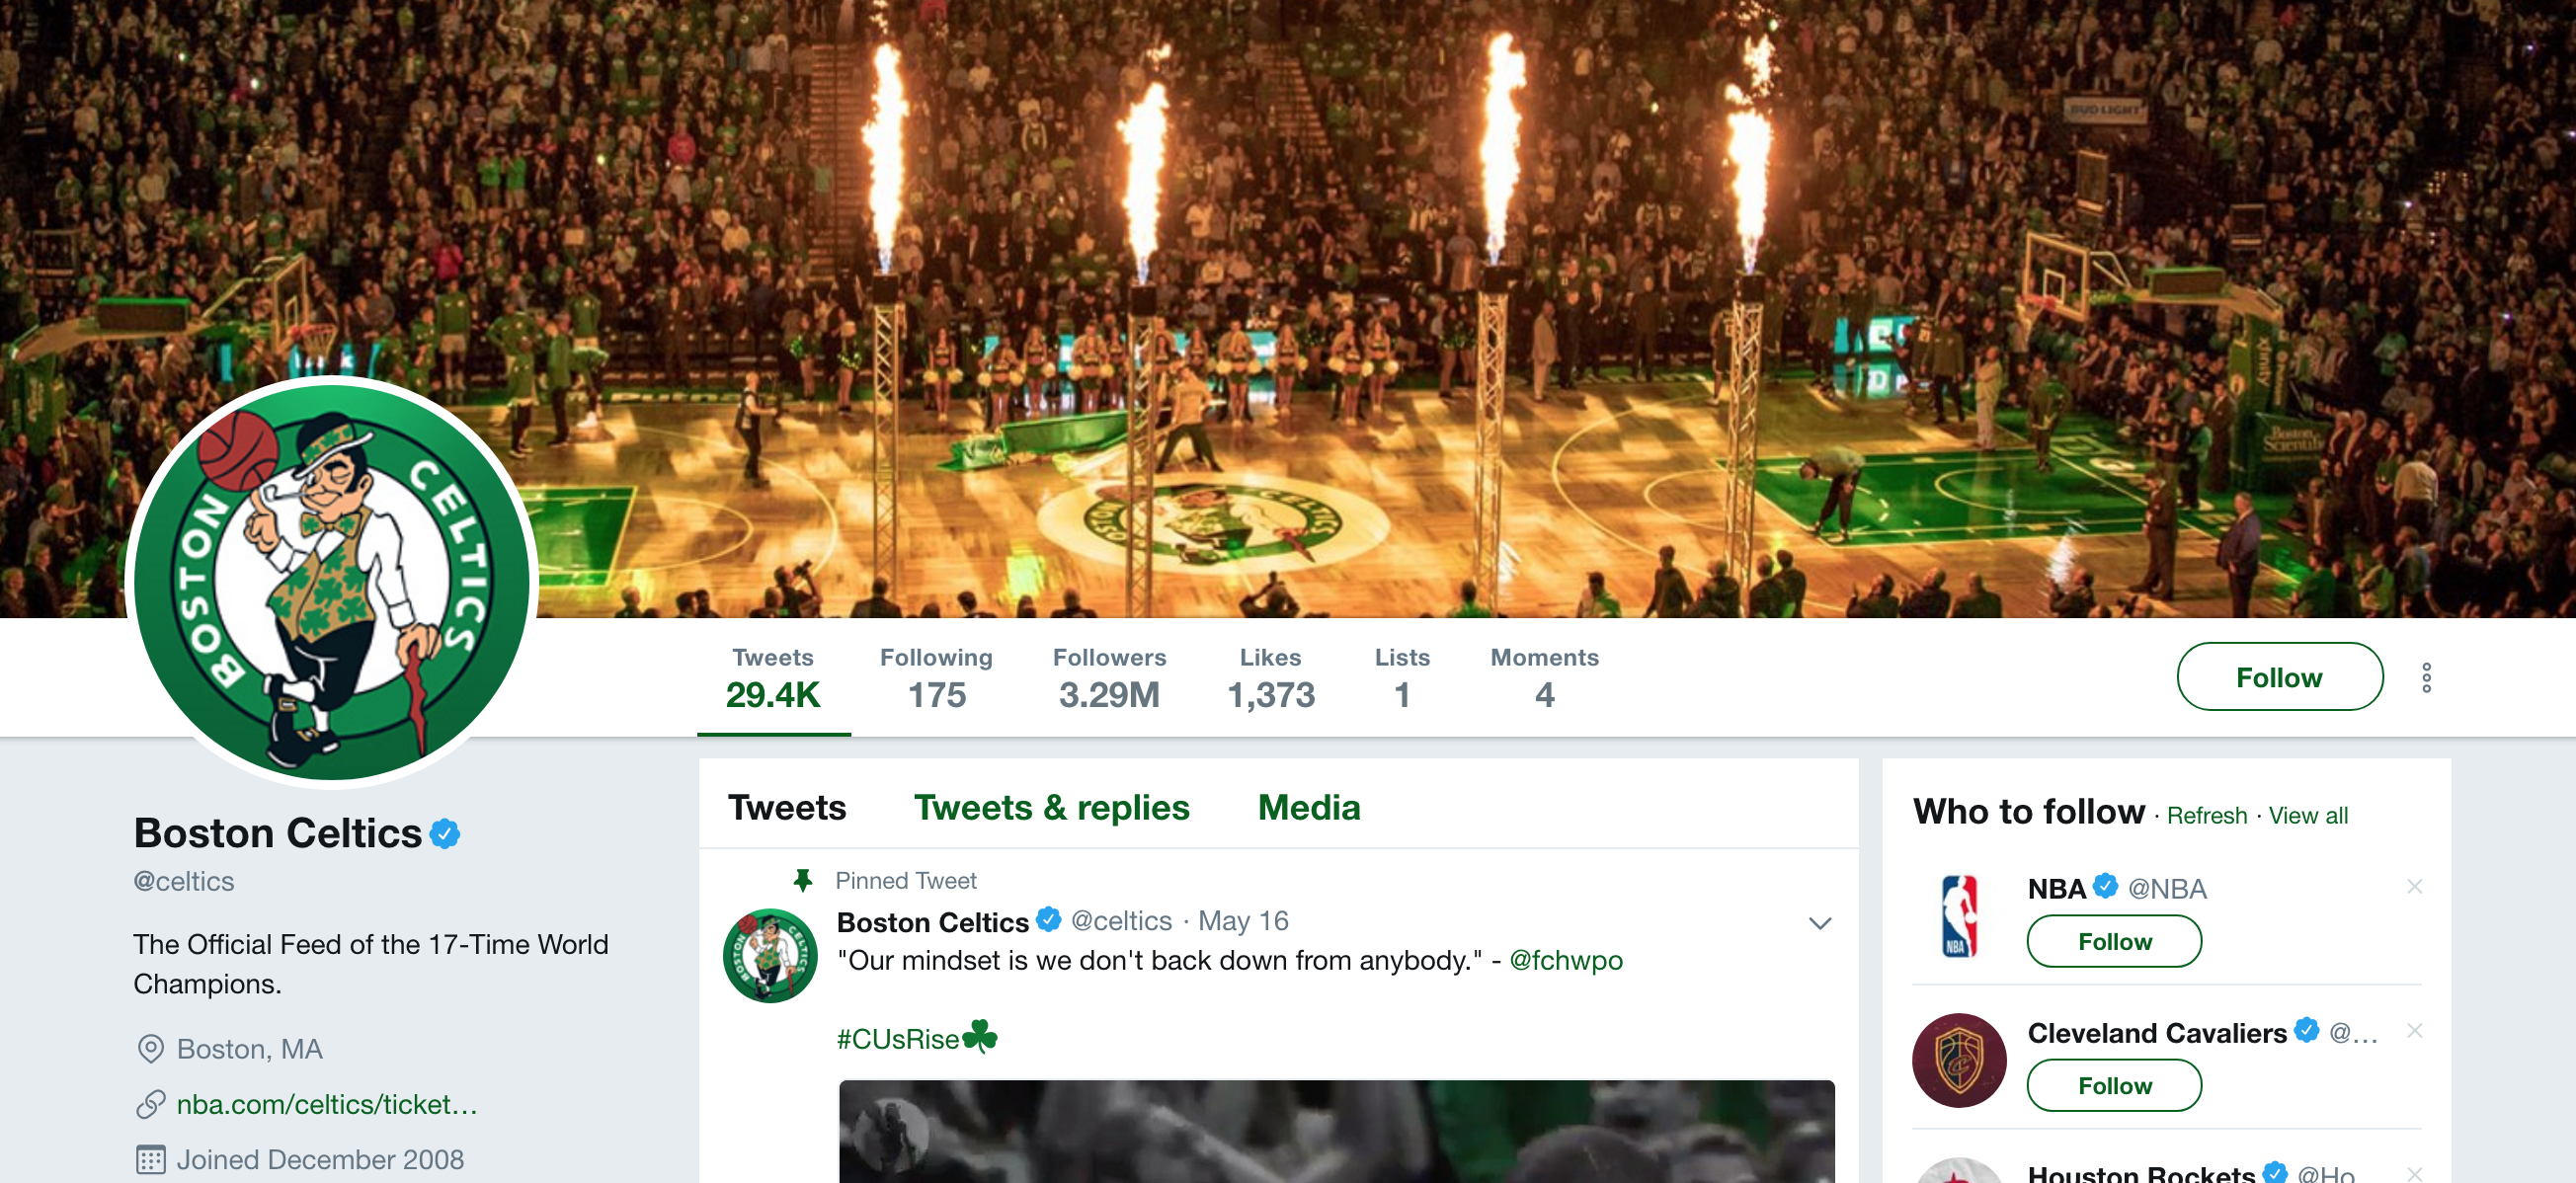 Boston Celtics Twitter